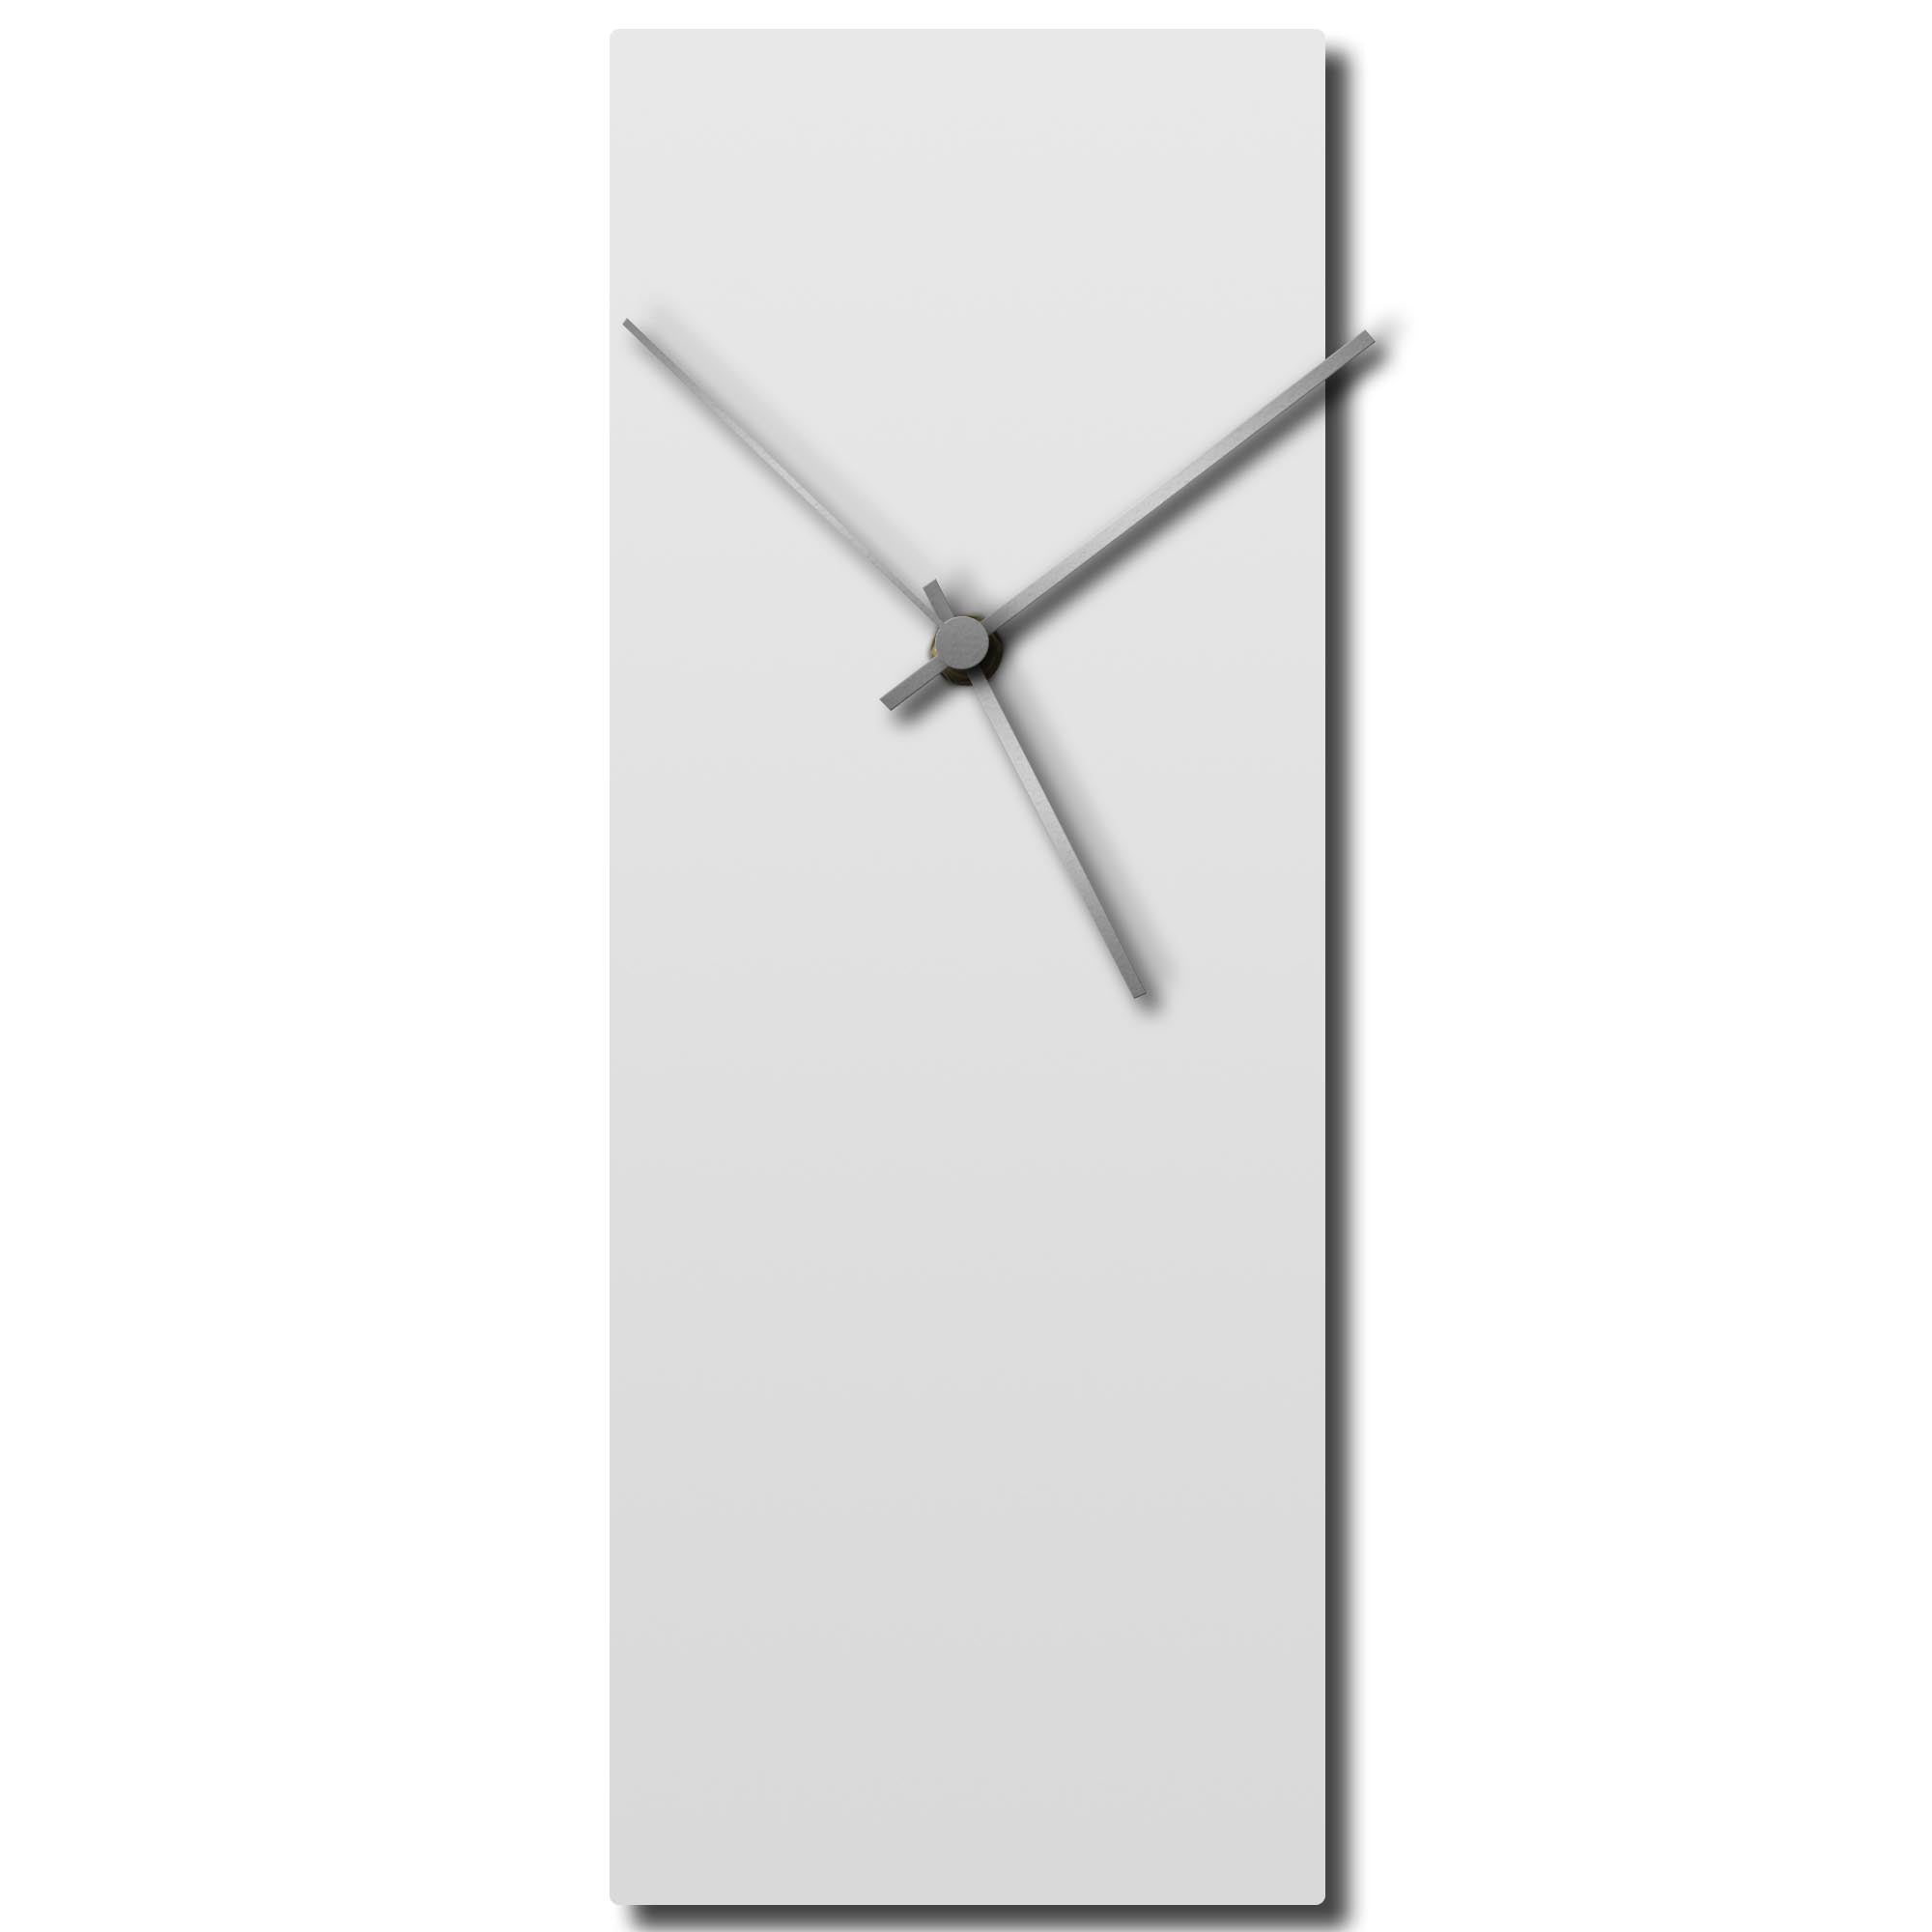 Whiteout Silver Clock by Adam Schwoeppe - Modern Wall Clock on Brushed White Polymetal